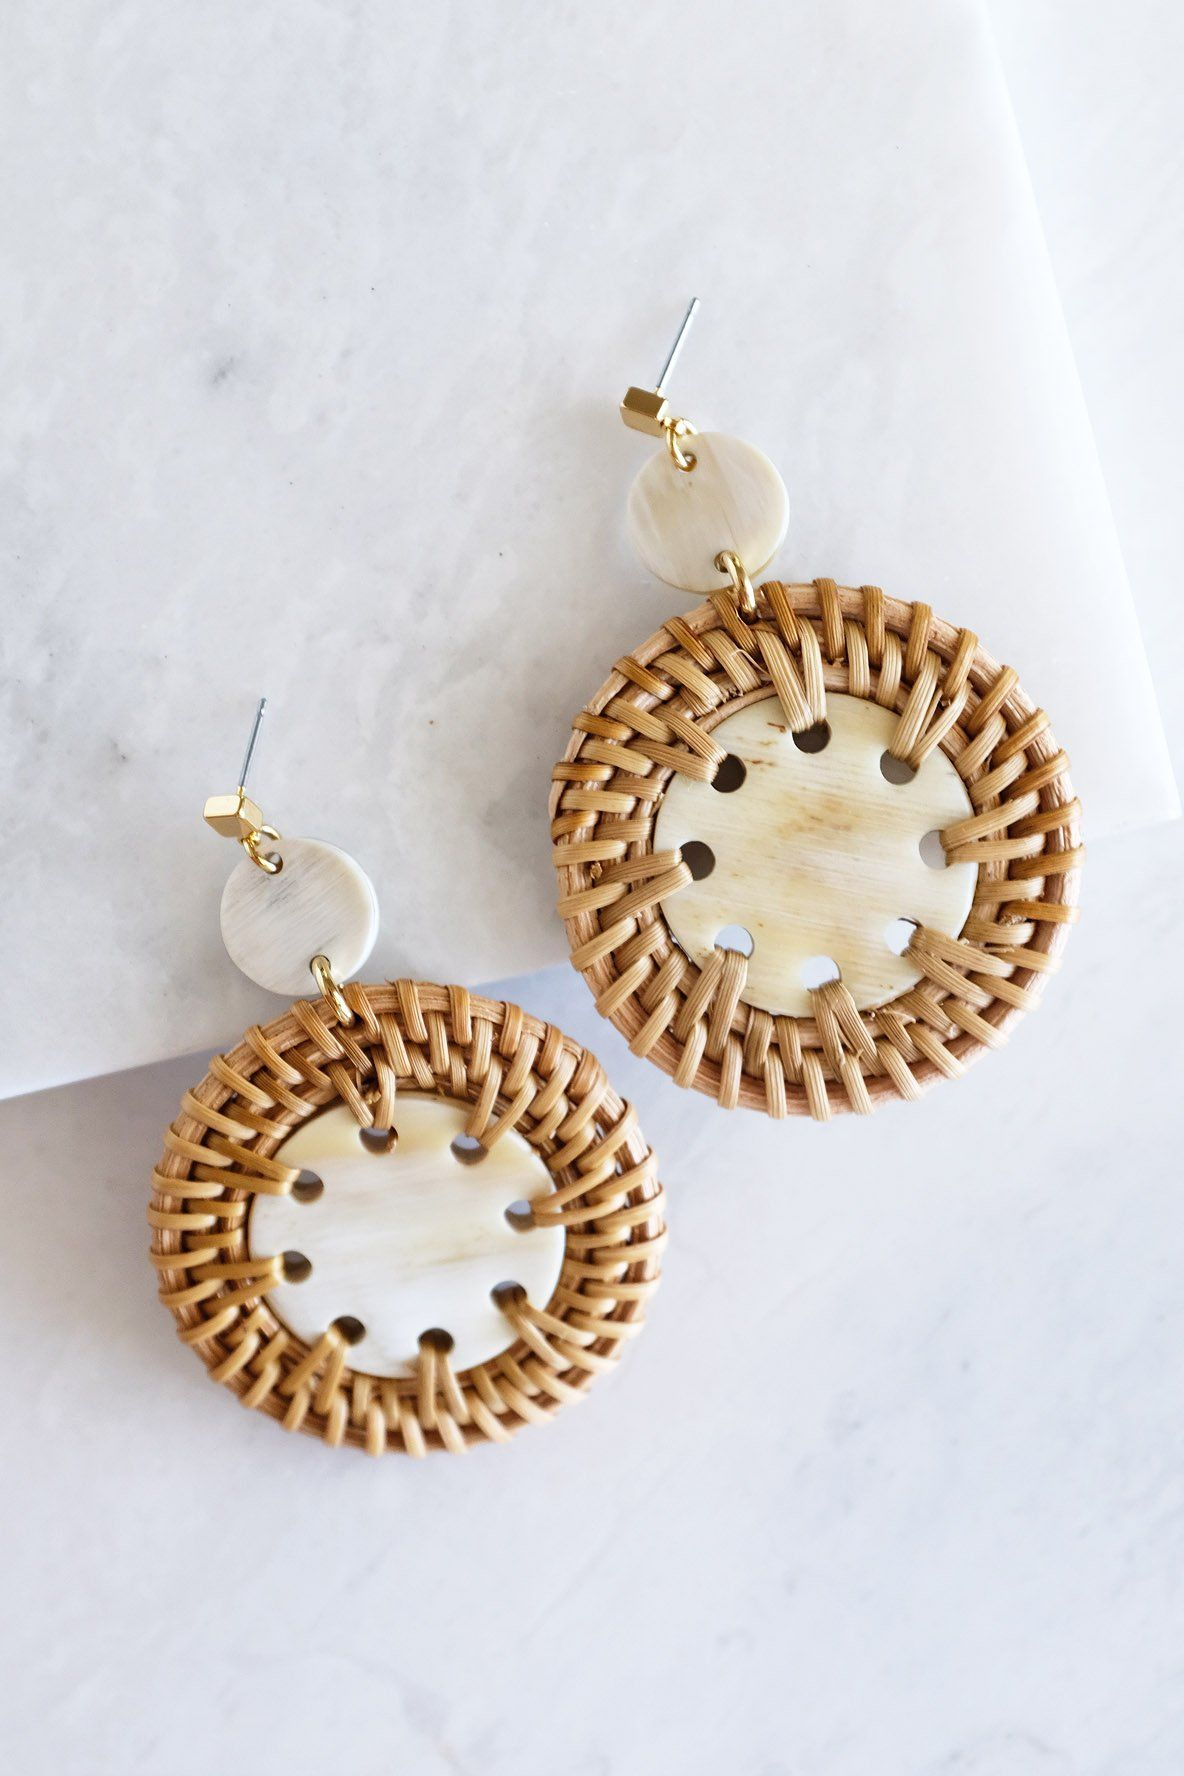 Thuy Binh Buffalo Horn & Handwoven Rattan Dangle Earrings - Handcrafted & Unique Buffalo Horn Jewelry